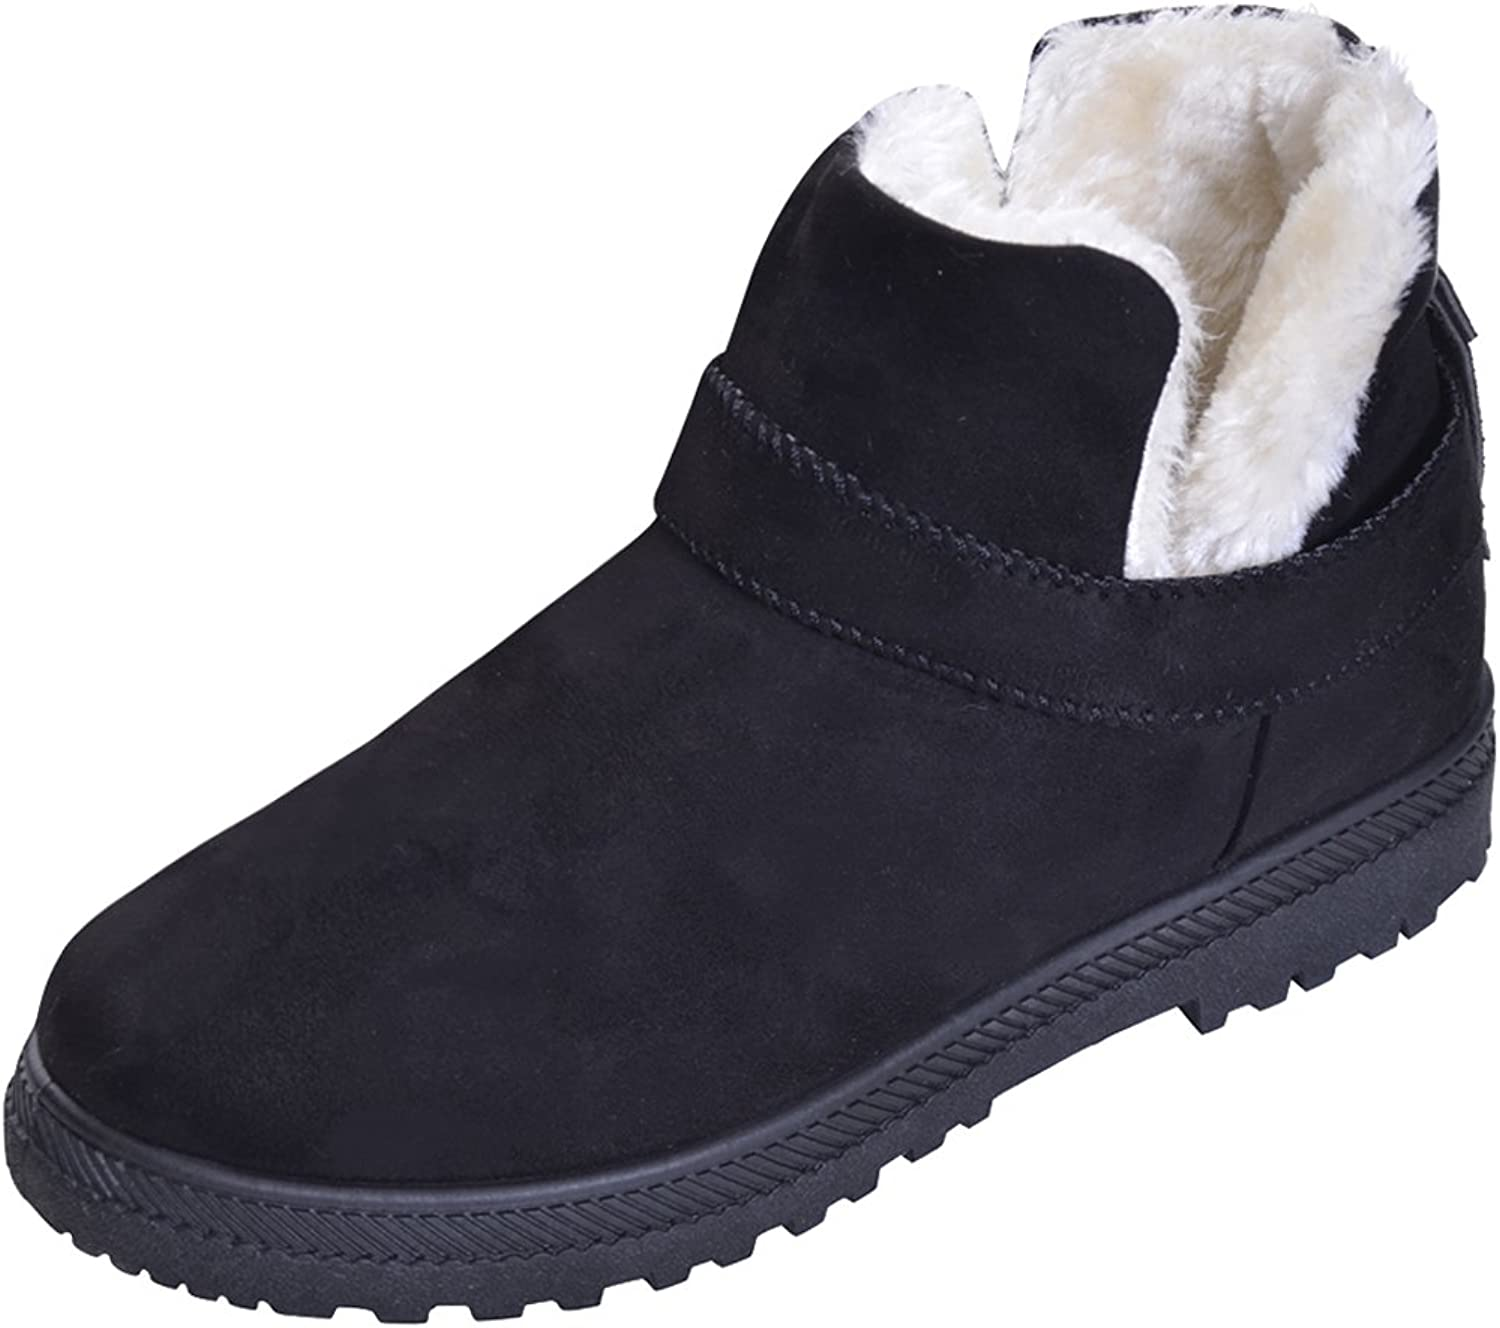 Hee Grand Women's Flat Ankle Boots Warm Fur Snow Boots Winter shoes